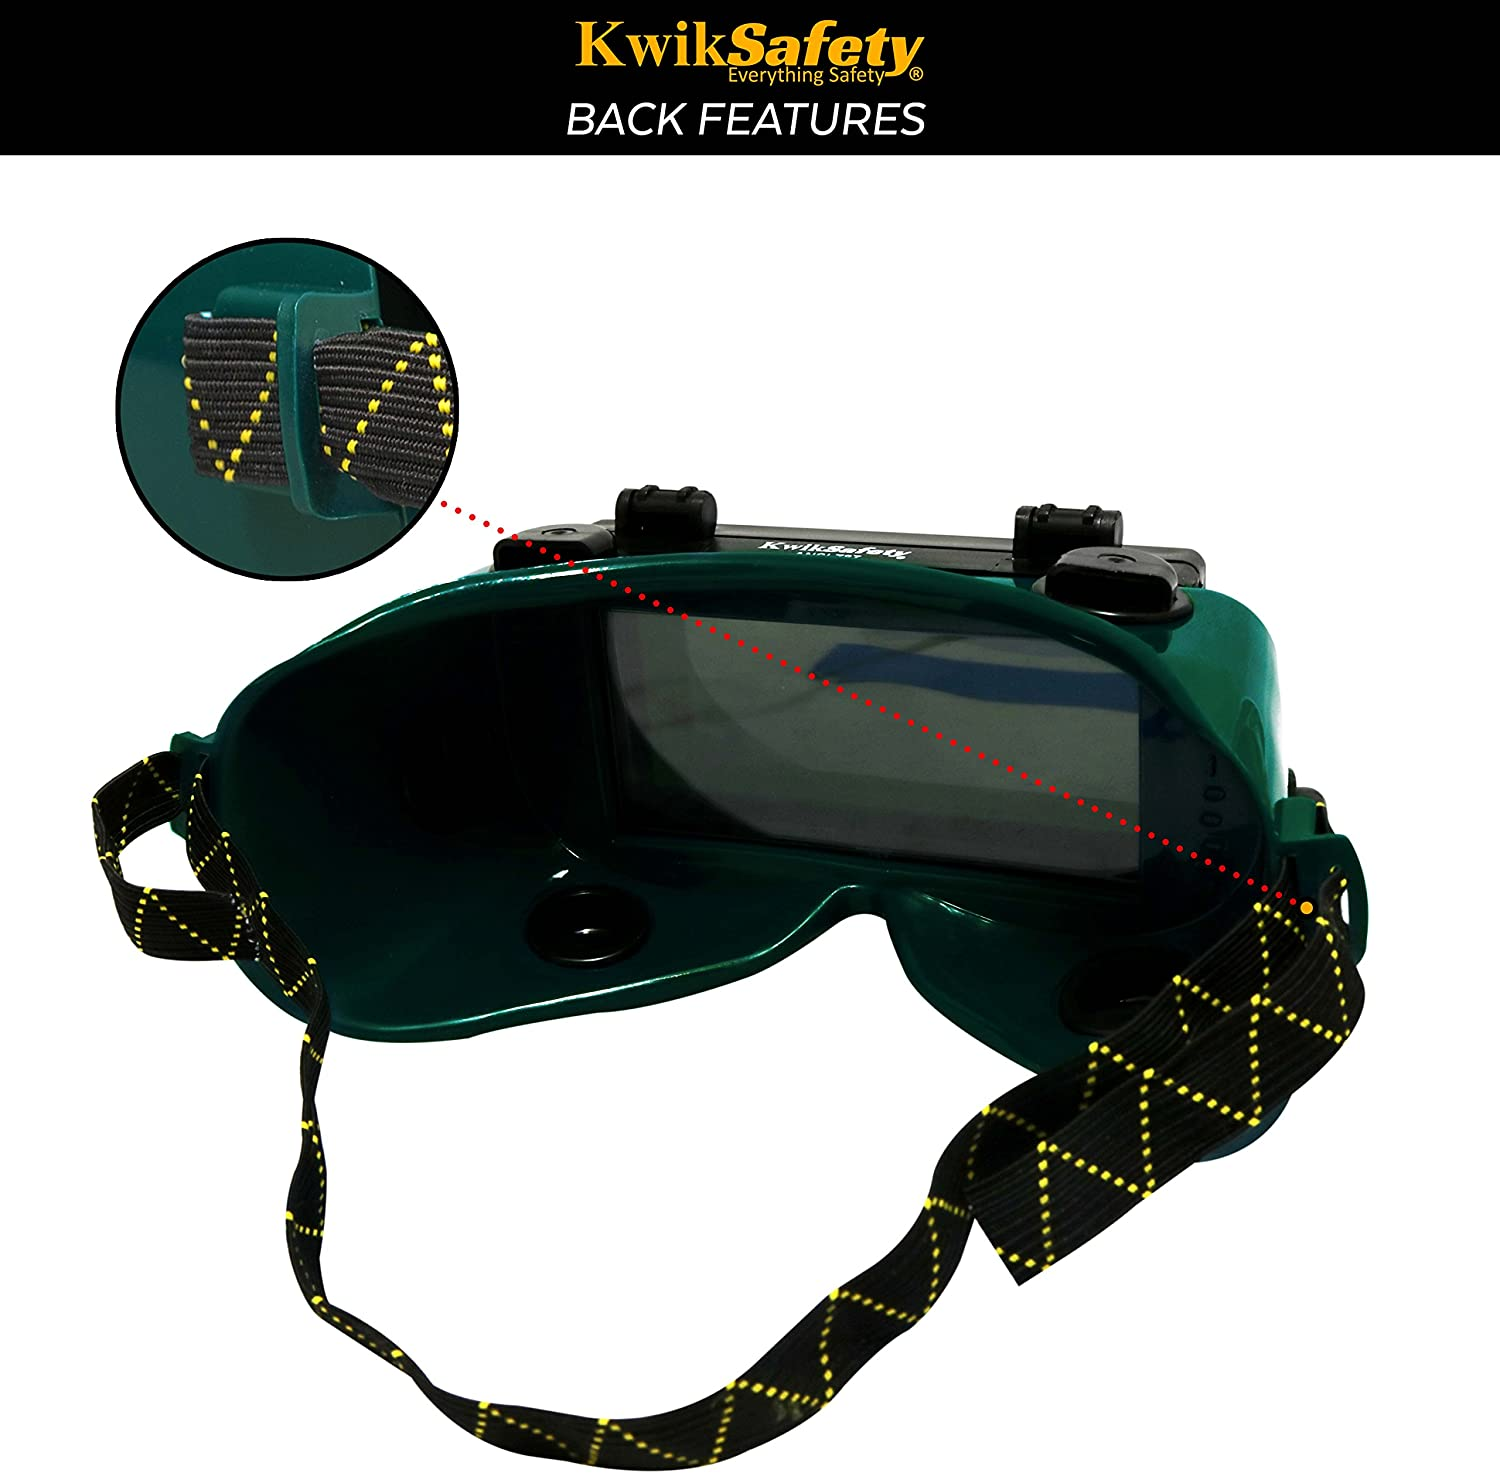 Adjustable Shade-5 Welding Safety Goggles Oxygen Acetylene Shades Goggles Safety Glasses Pressure Equalizer KwikSafety Welding Goggles Welders Mask Front Flip Lift Front Welder Goggles